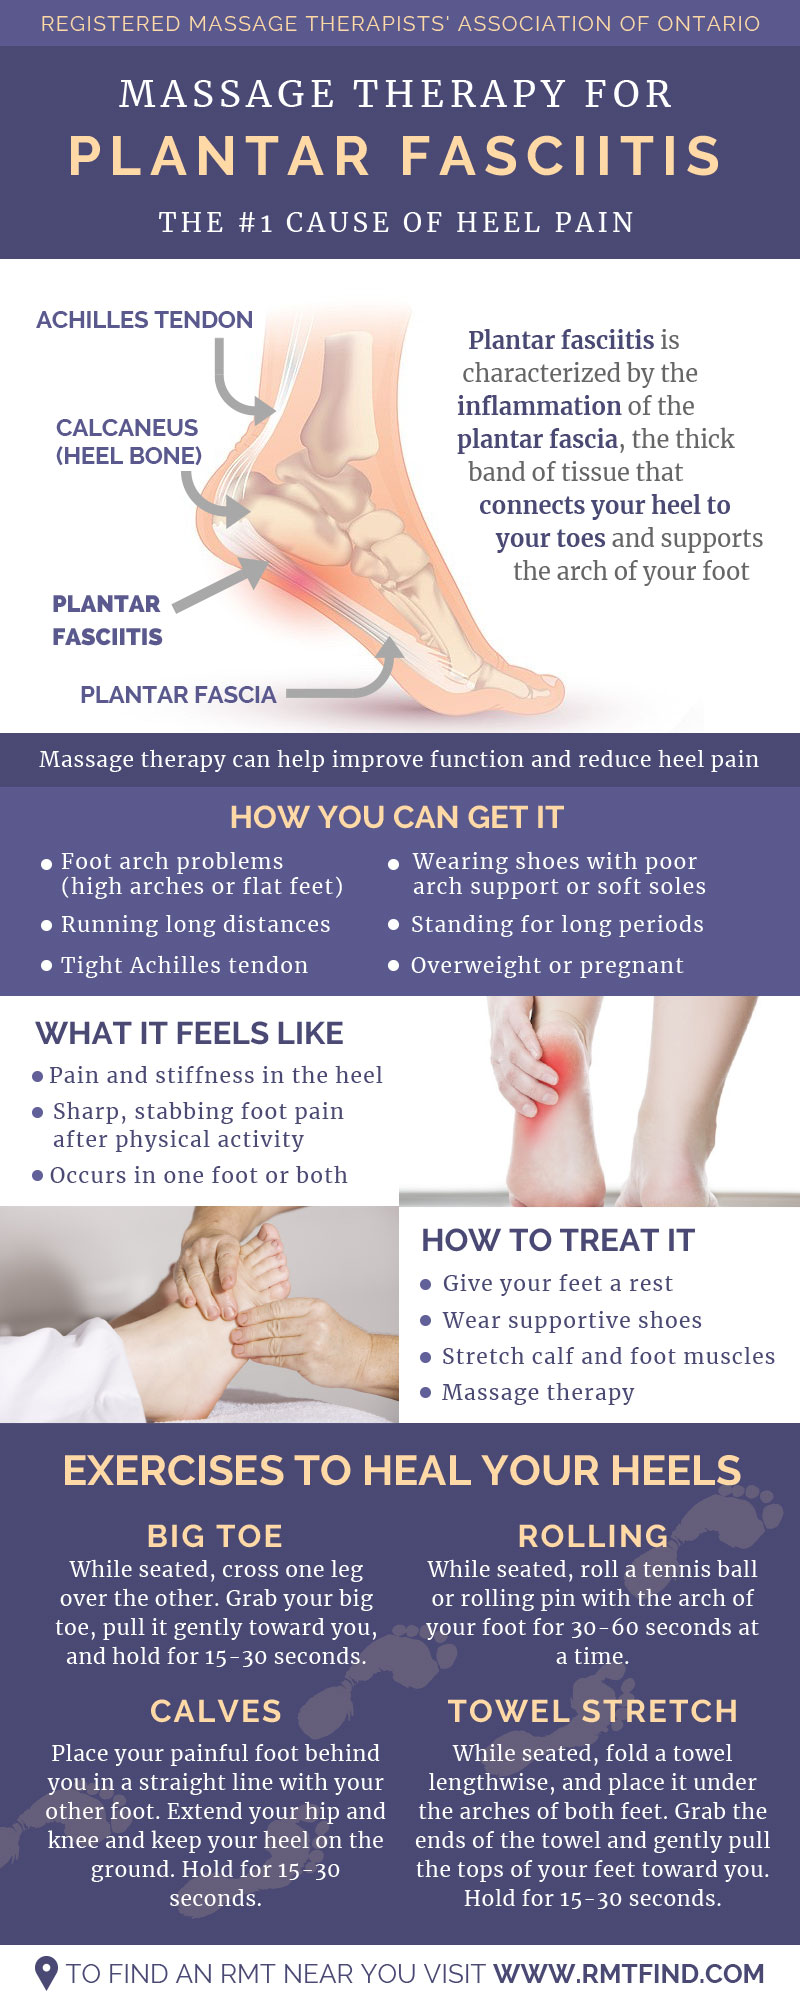 Massage Therapy for Plantar Fasciitis, the Number one cause of Heel Pain